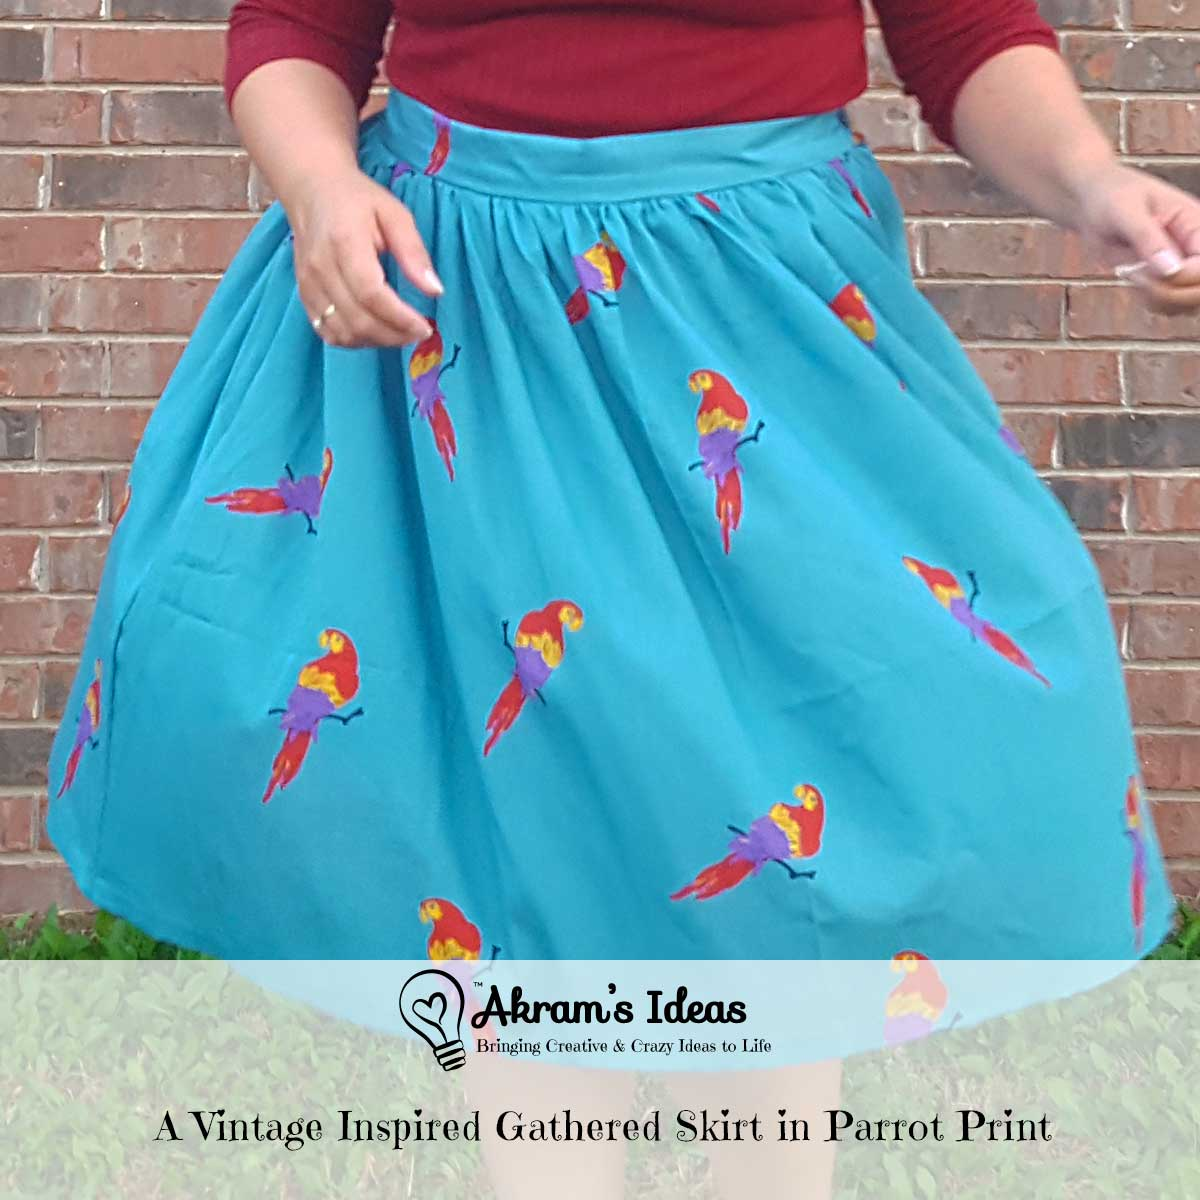 A Vintage Inspired Gathered Skirt in Parrot Print